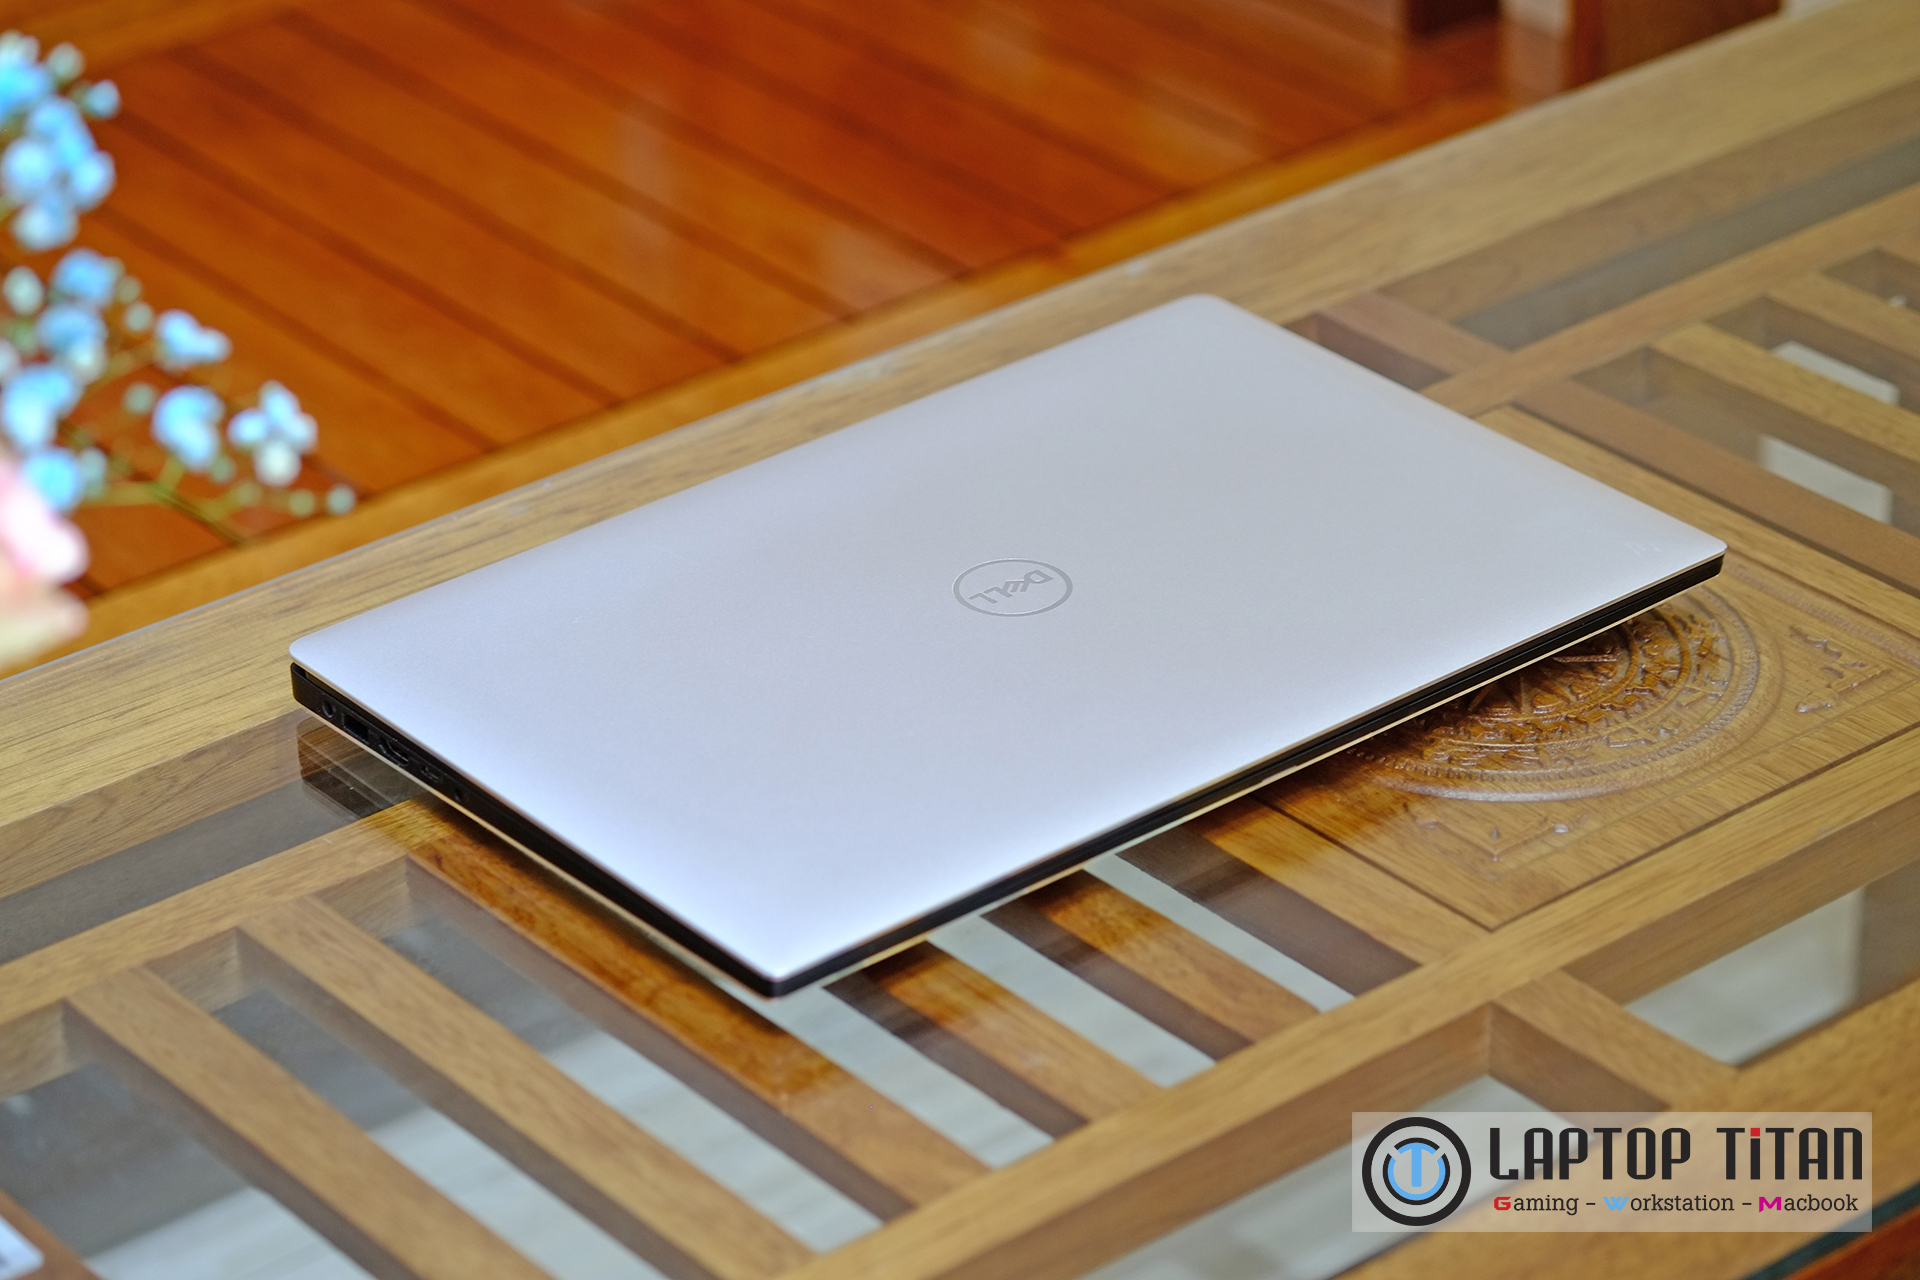 Dell Xps 15 7590 006